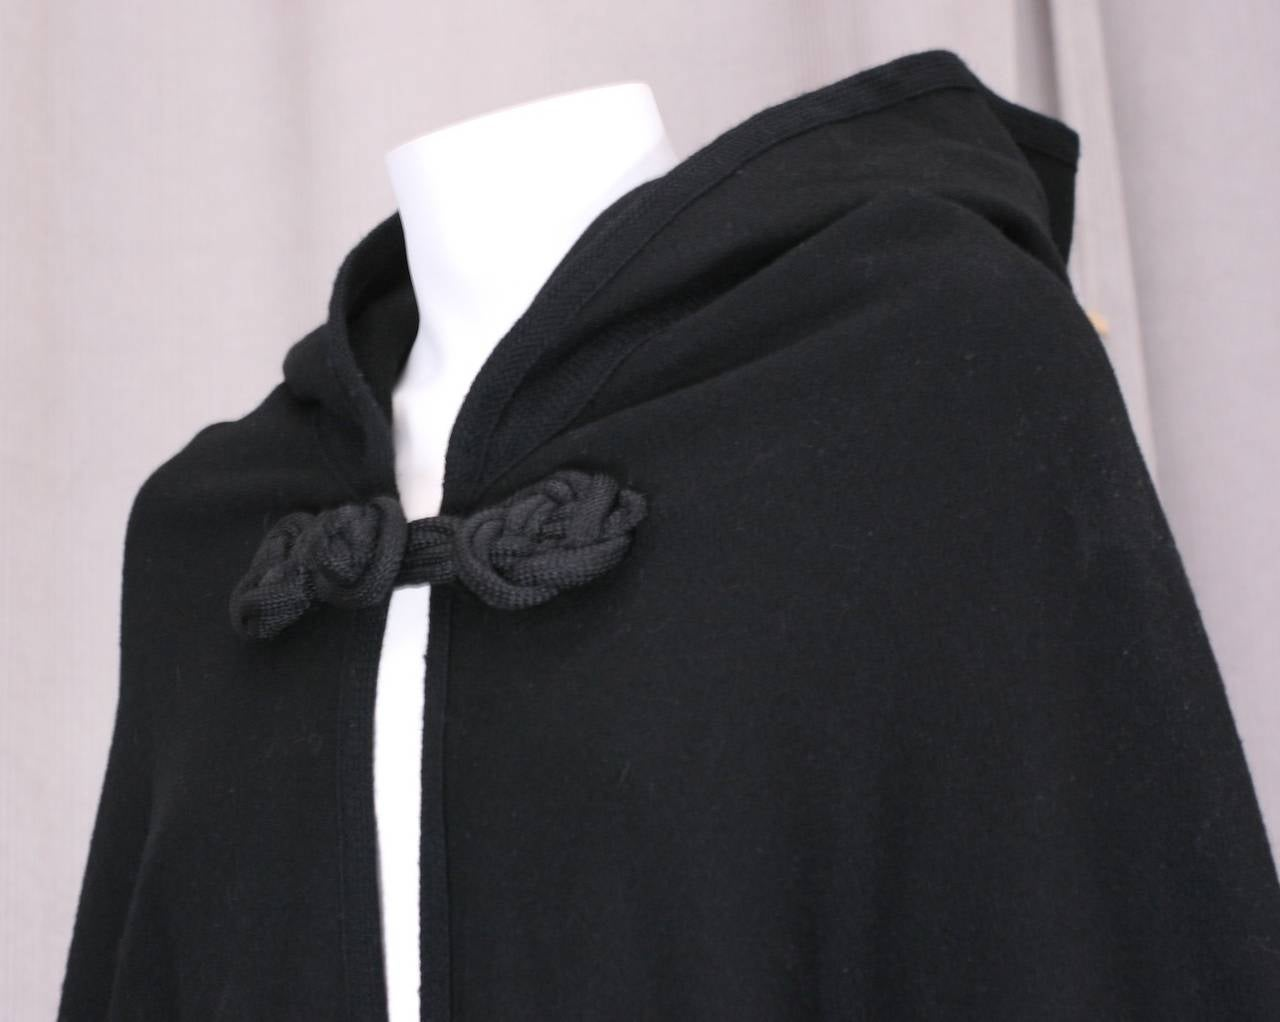 Half circle black wool melton cape with frog closure at neck. Large monks hood, completely edged in signature YSL soutache. The signature soutache was used in many YSL collections and is used on the hood, neckline, and all exposed edges. Cape is